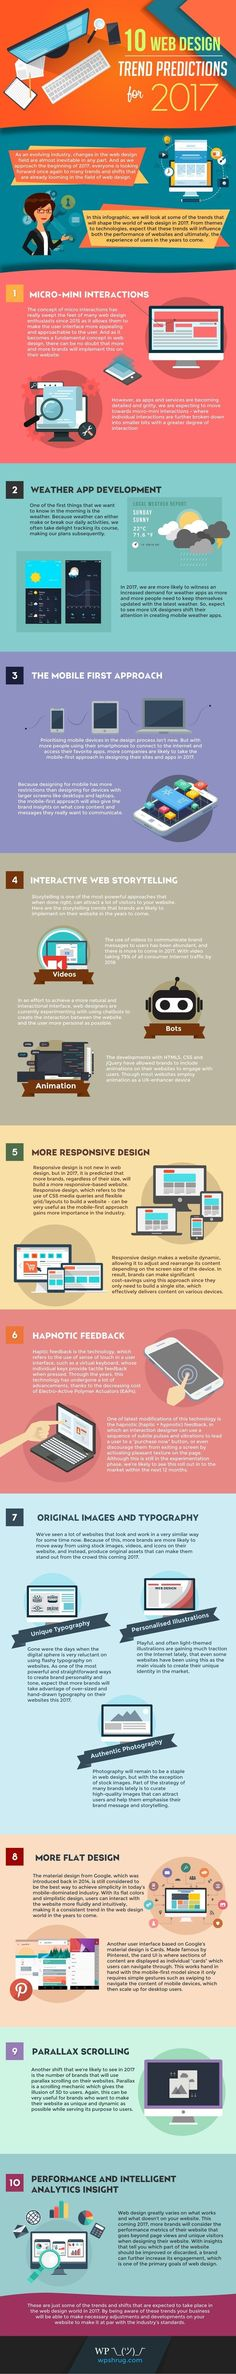 Latest Trends in Web Design this 2017 #Infographic #websitedesign - http://marketinghits.com/blog/latest-trends-in-web-design-this-2017-infographic-websitedesign/